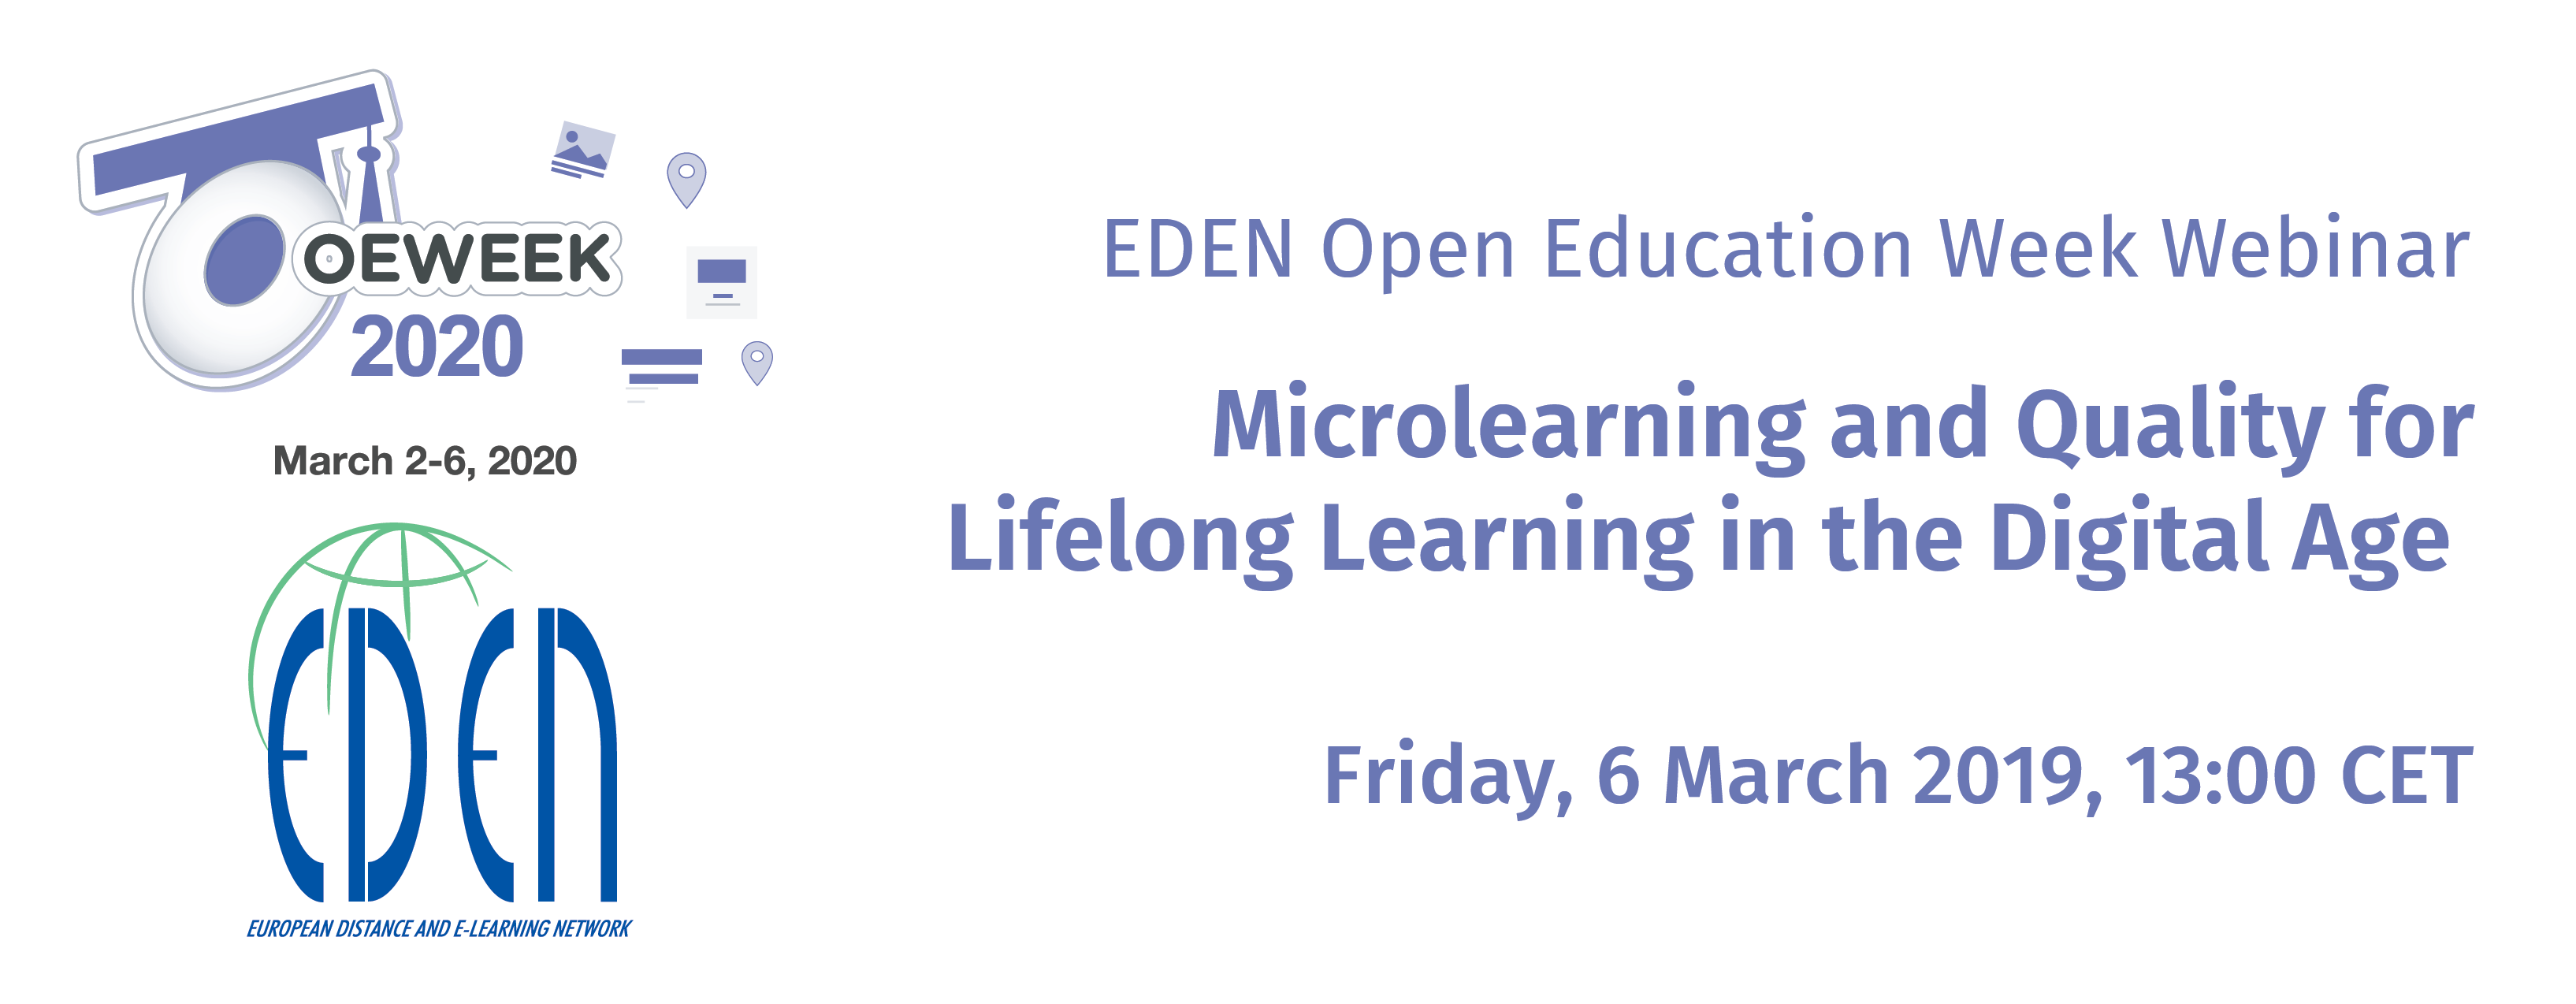 Microlearning and Quality for Lifelong Learning in the Digital Age